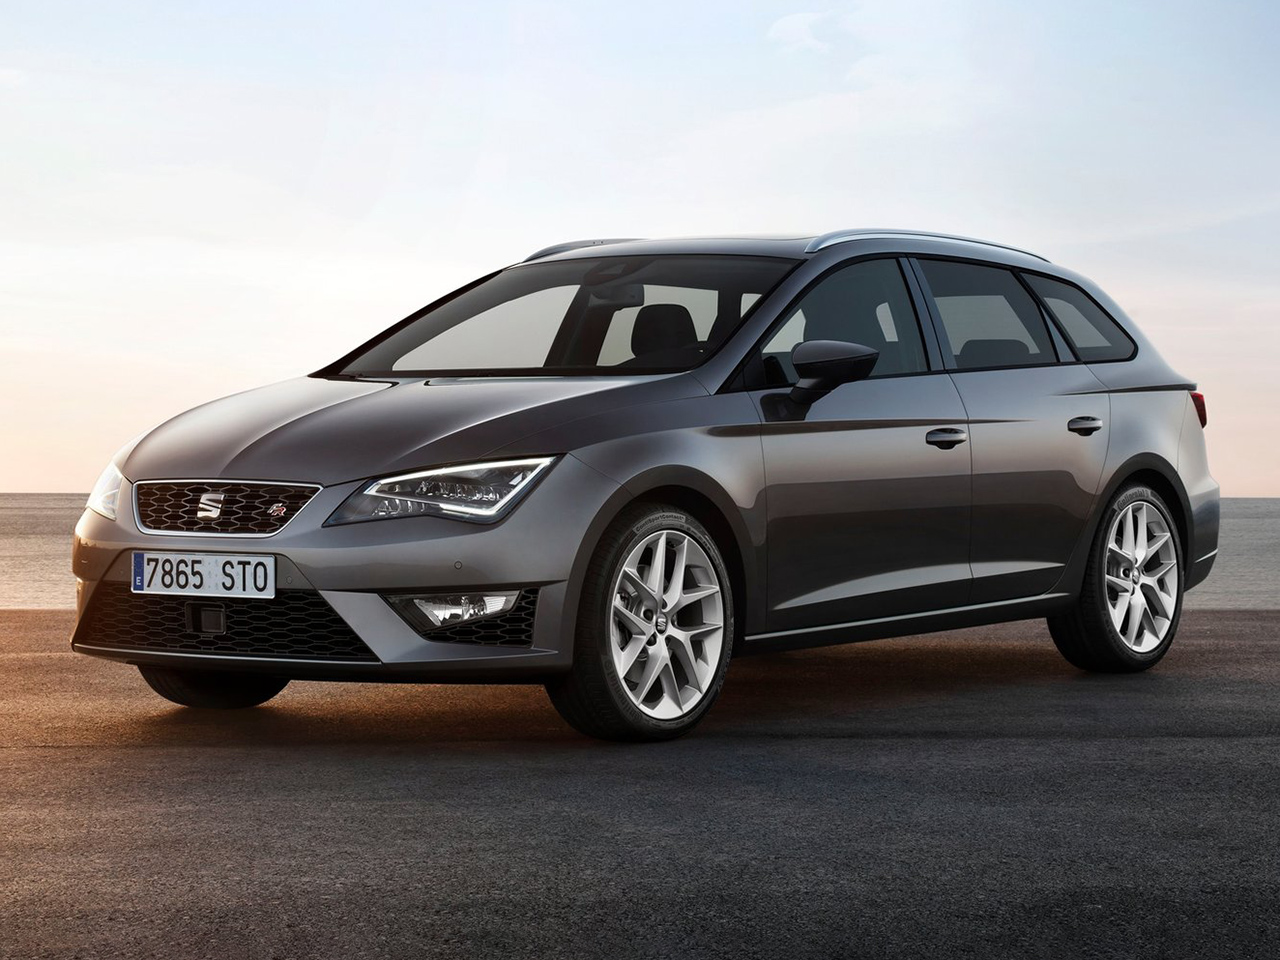 seat leon st 2016 1 4 tgi gnc 110cv dsg style. Black Bedroom Furniture Sets. Home Design Ideas